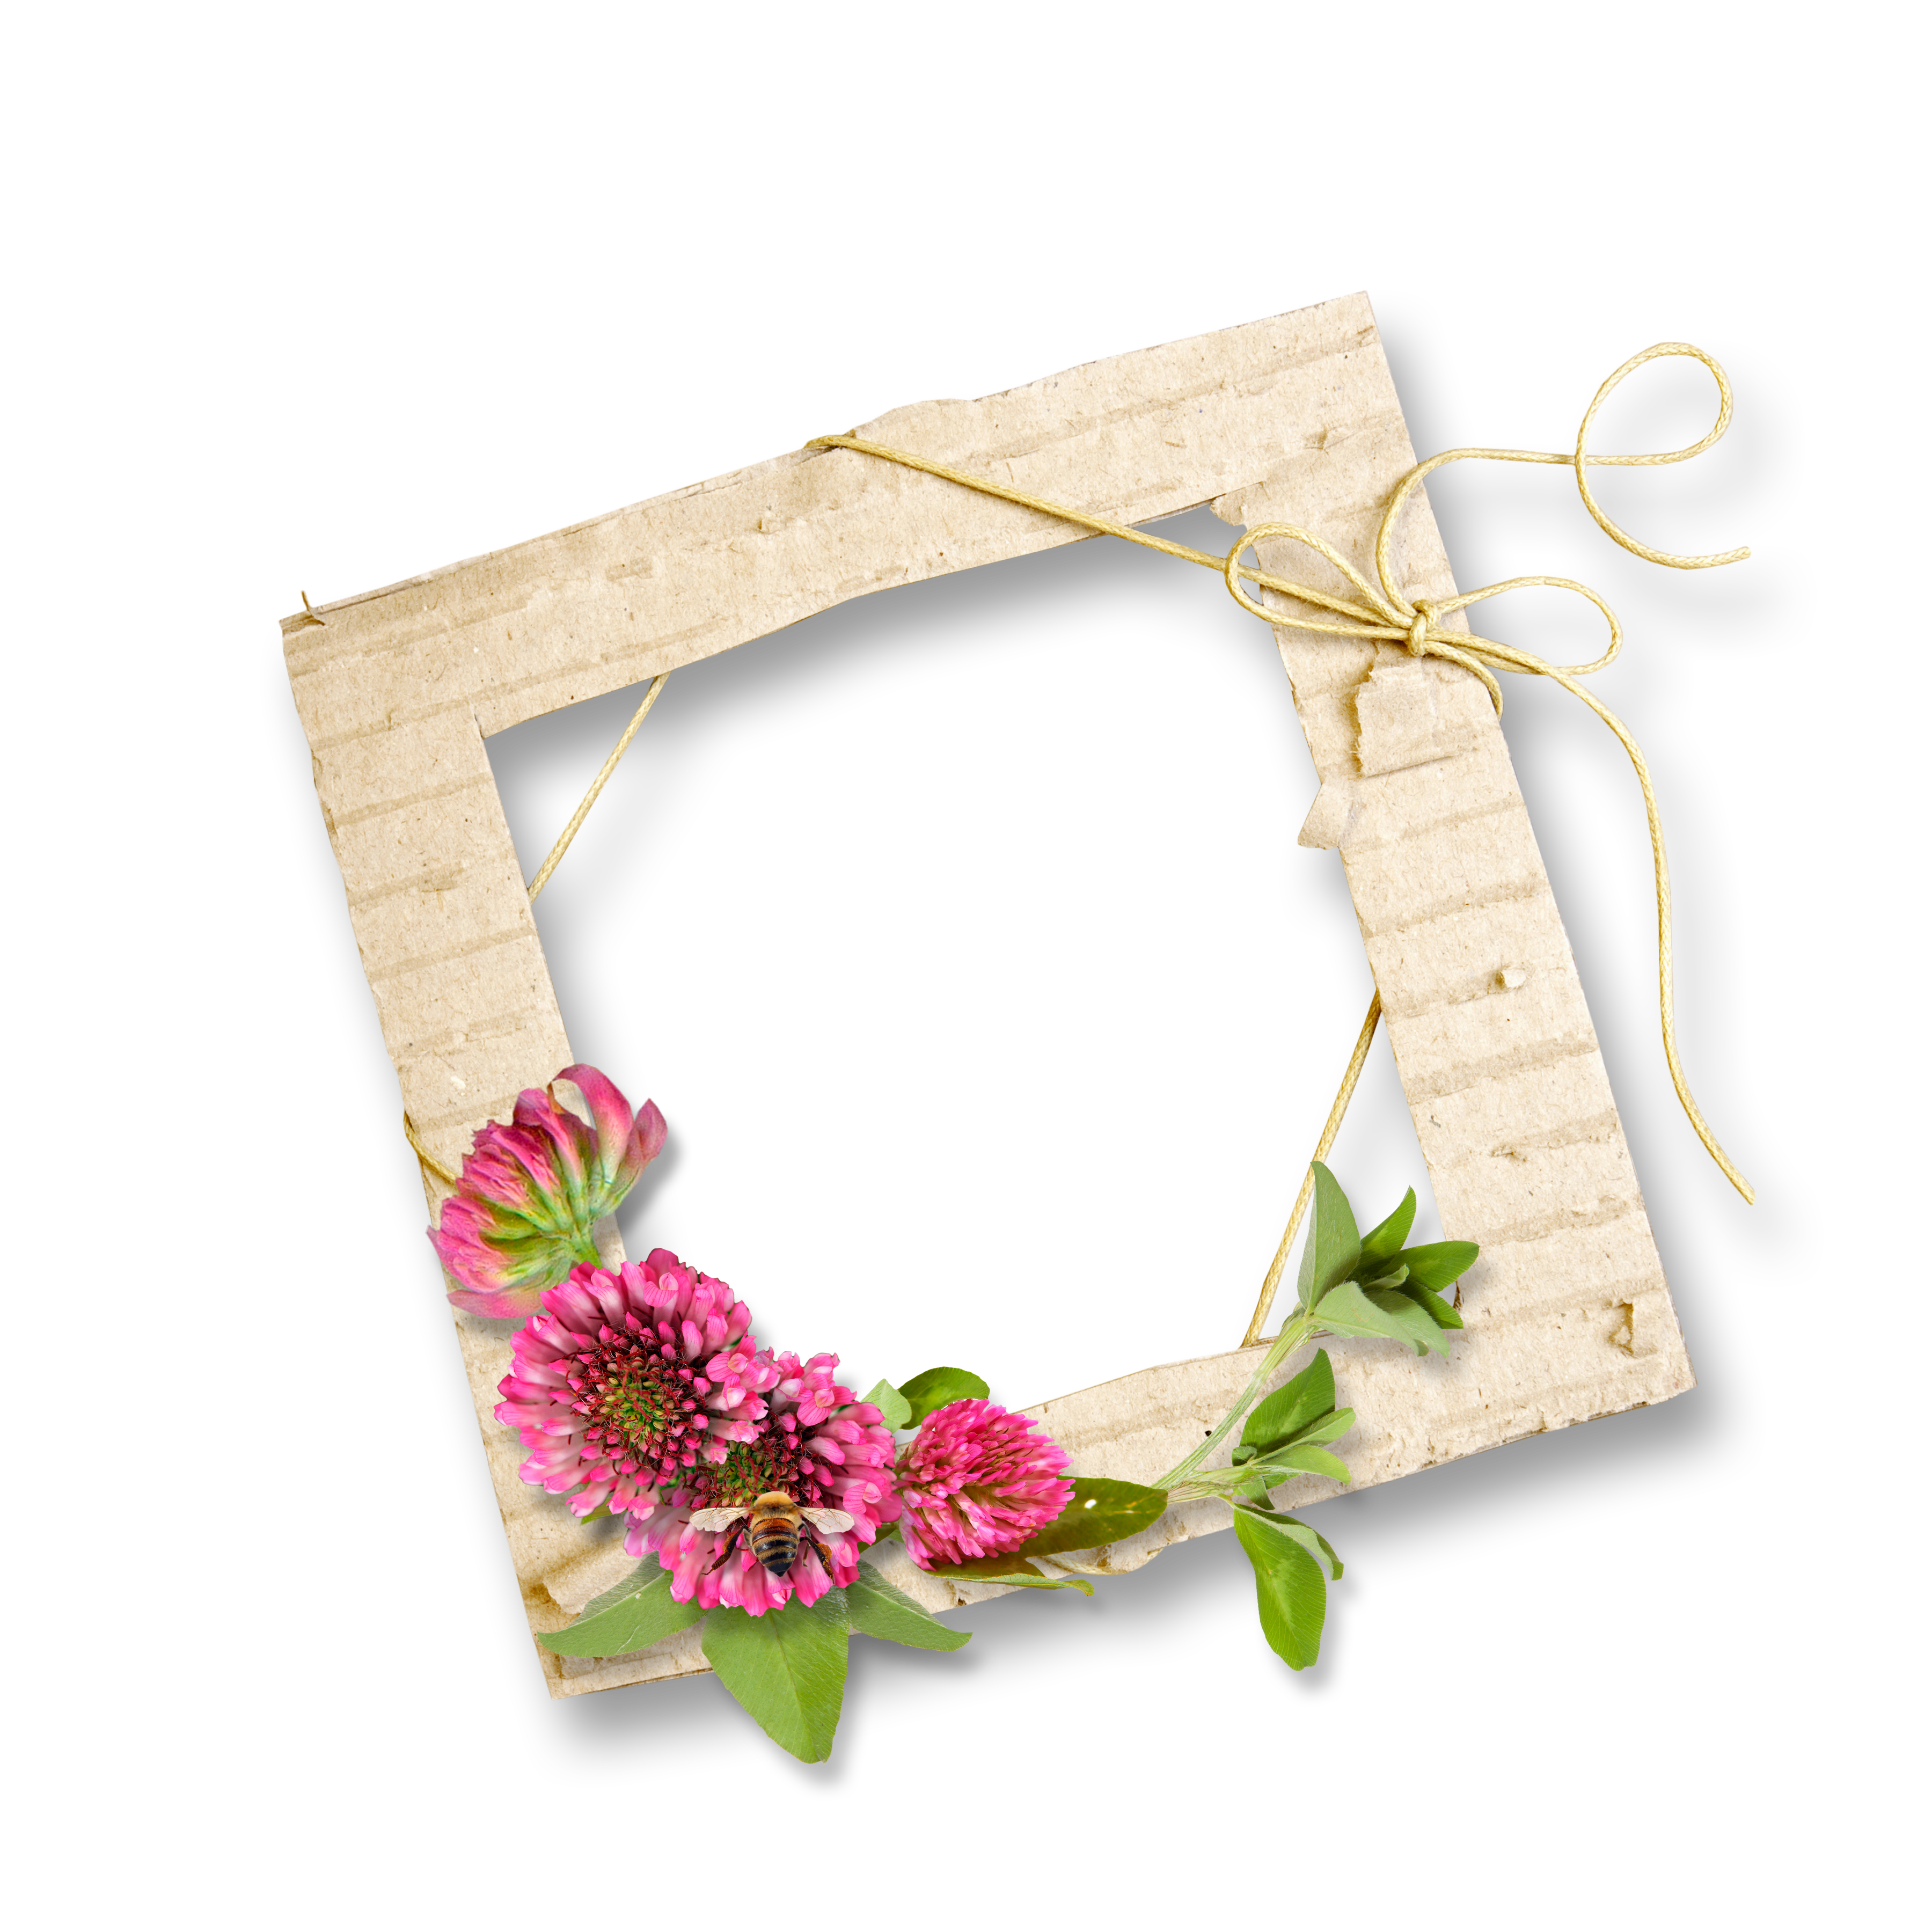 Picture Frame Wood Framing Free Transparent Image HD PNG Image